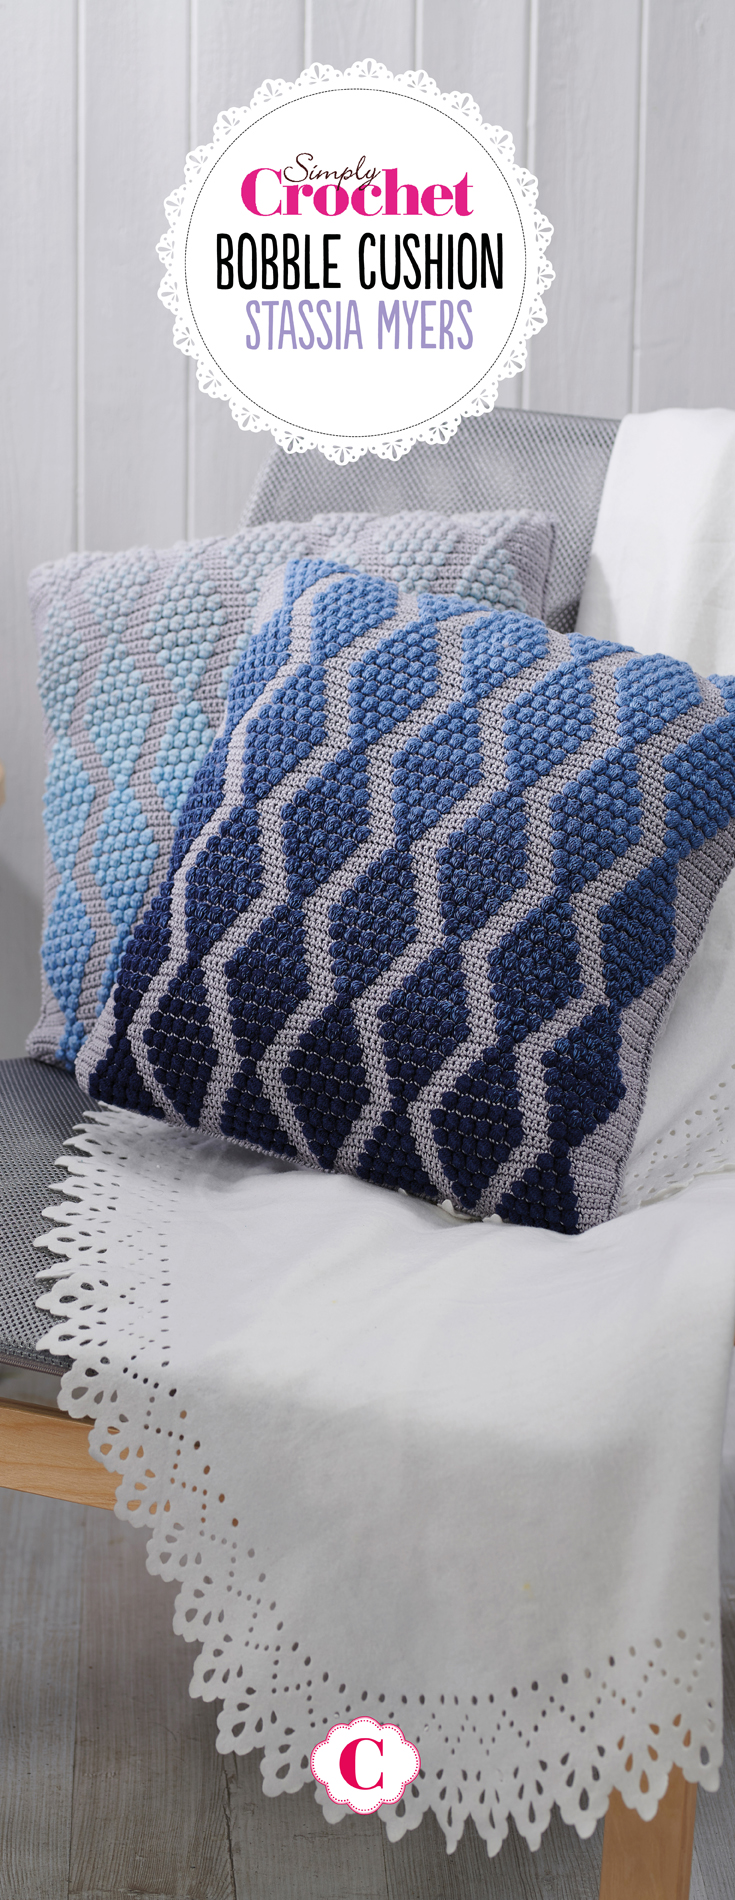 Simply_Crochet_issue88_bobble_cushion_pin